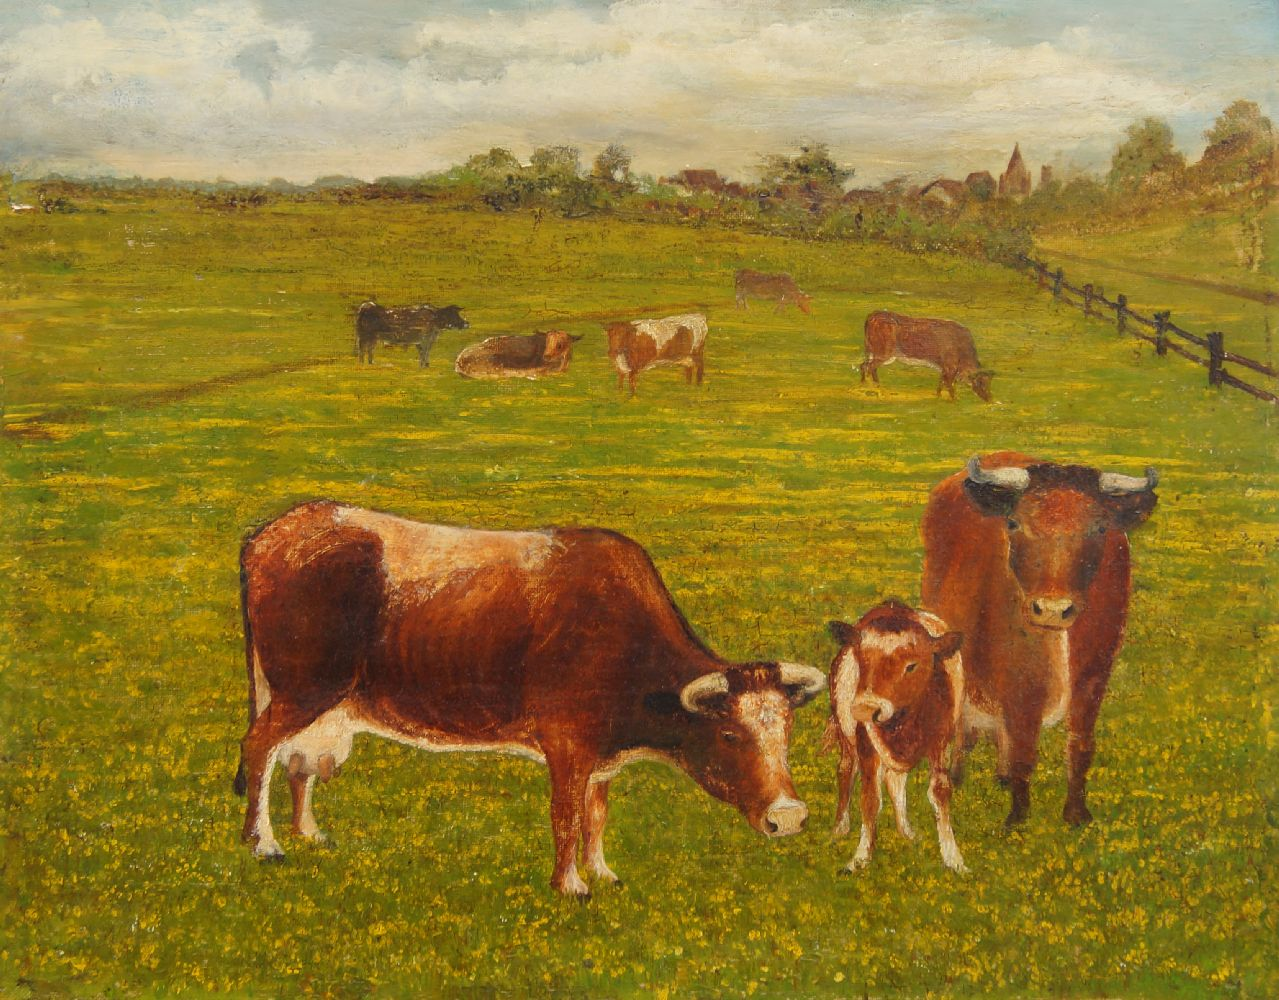 French Provincial school, 20th century- Cows in a field; oil on canvas, 30.5x38cm: together with two